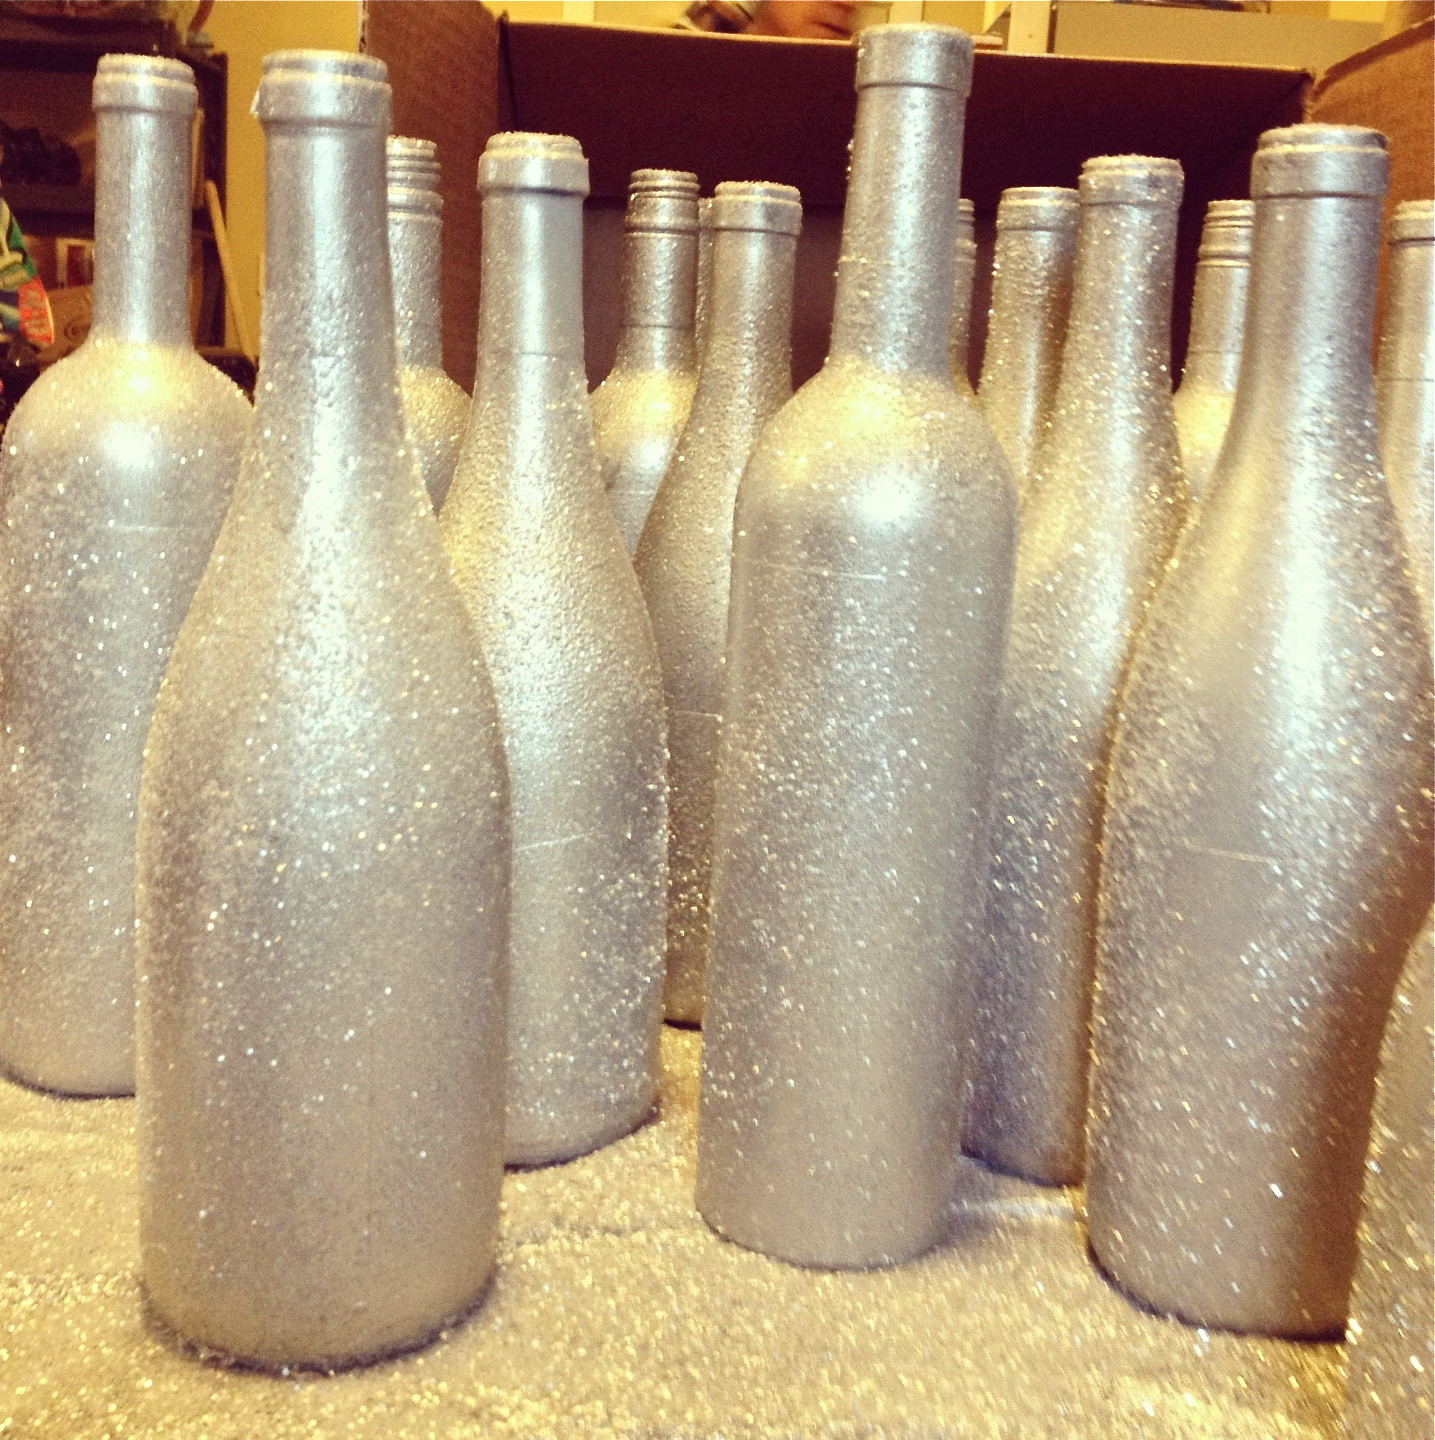 Best ideas about DIY Wine Bottle . Save or Pin Tutorial DIY Holiday Wine Bottle Vases Now.